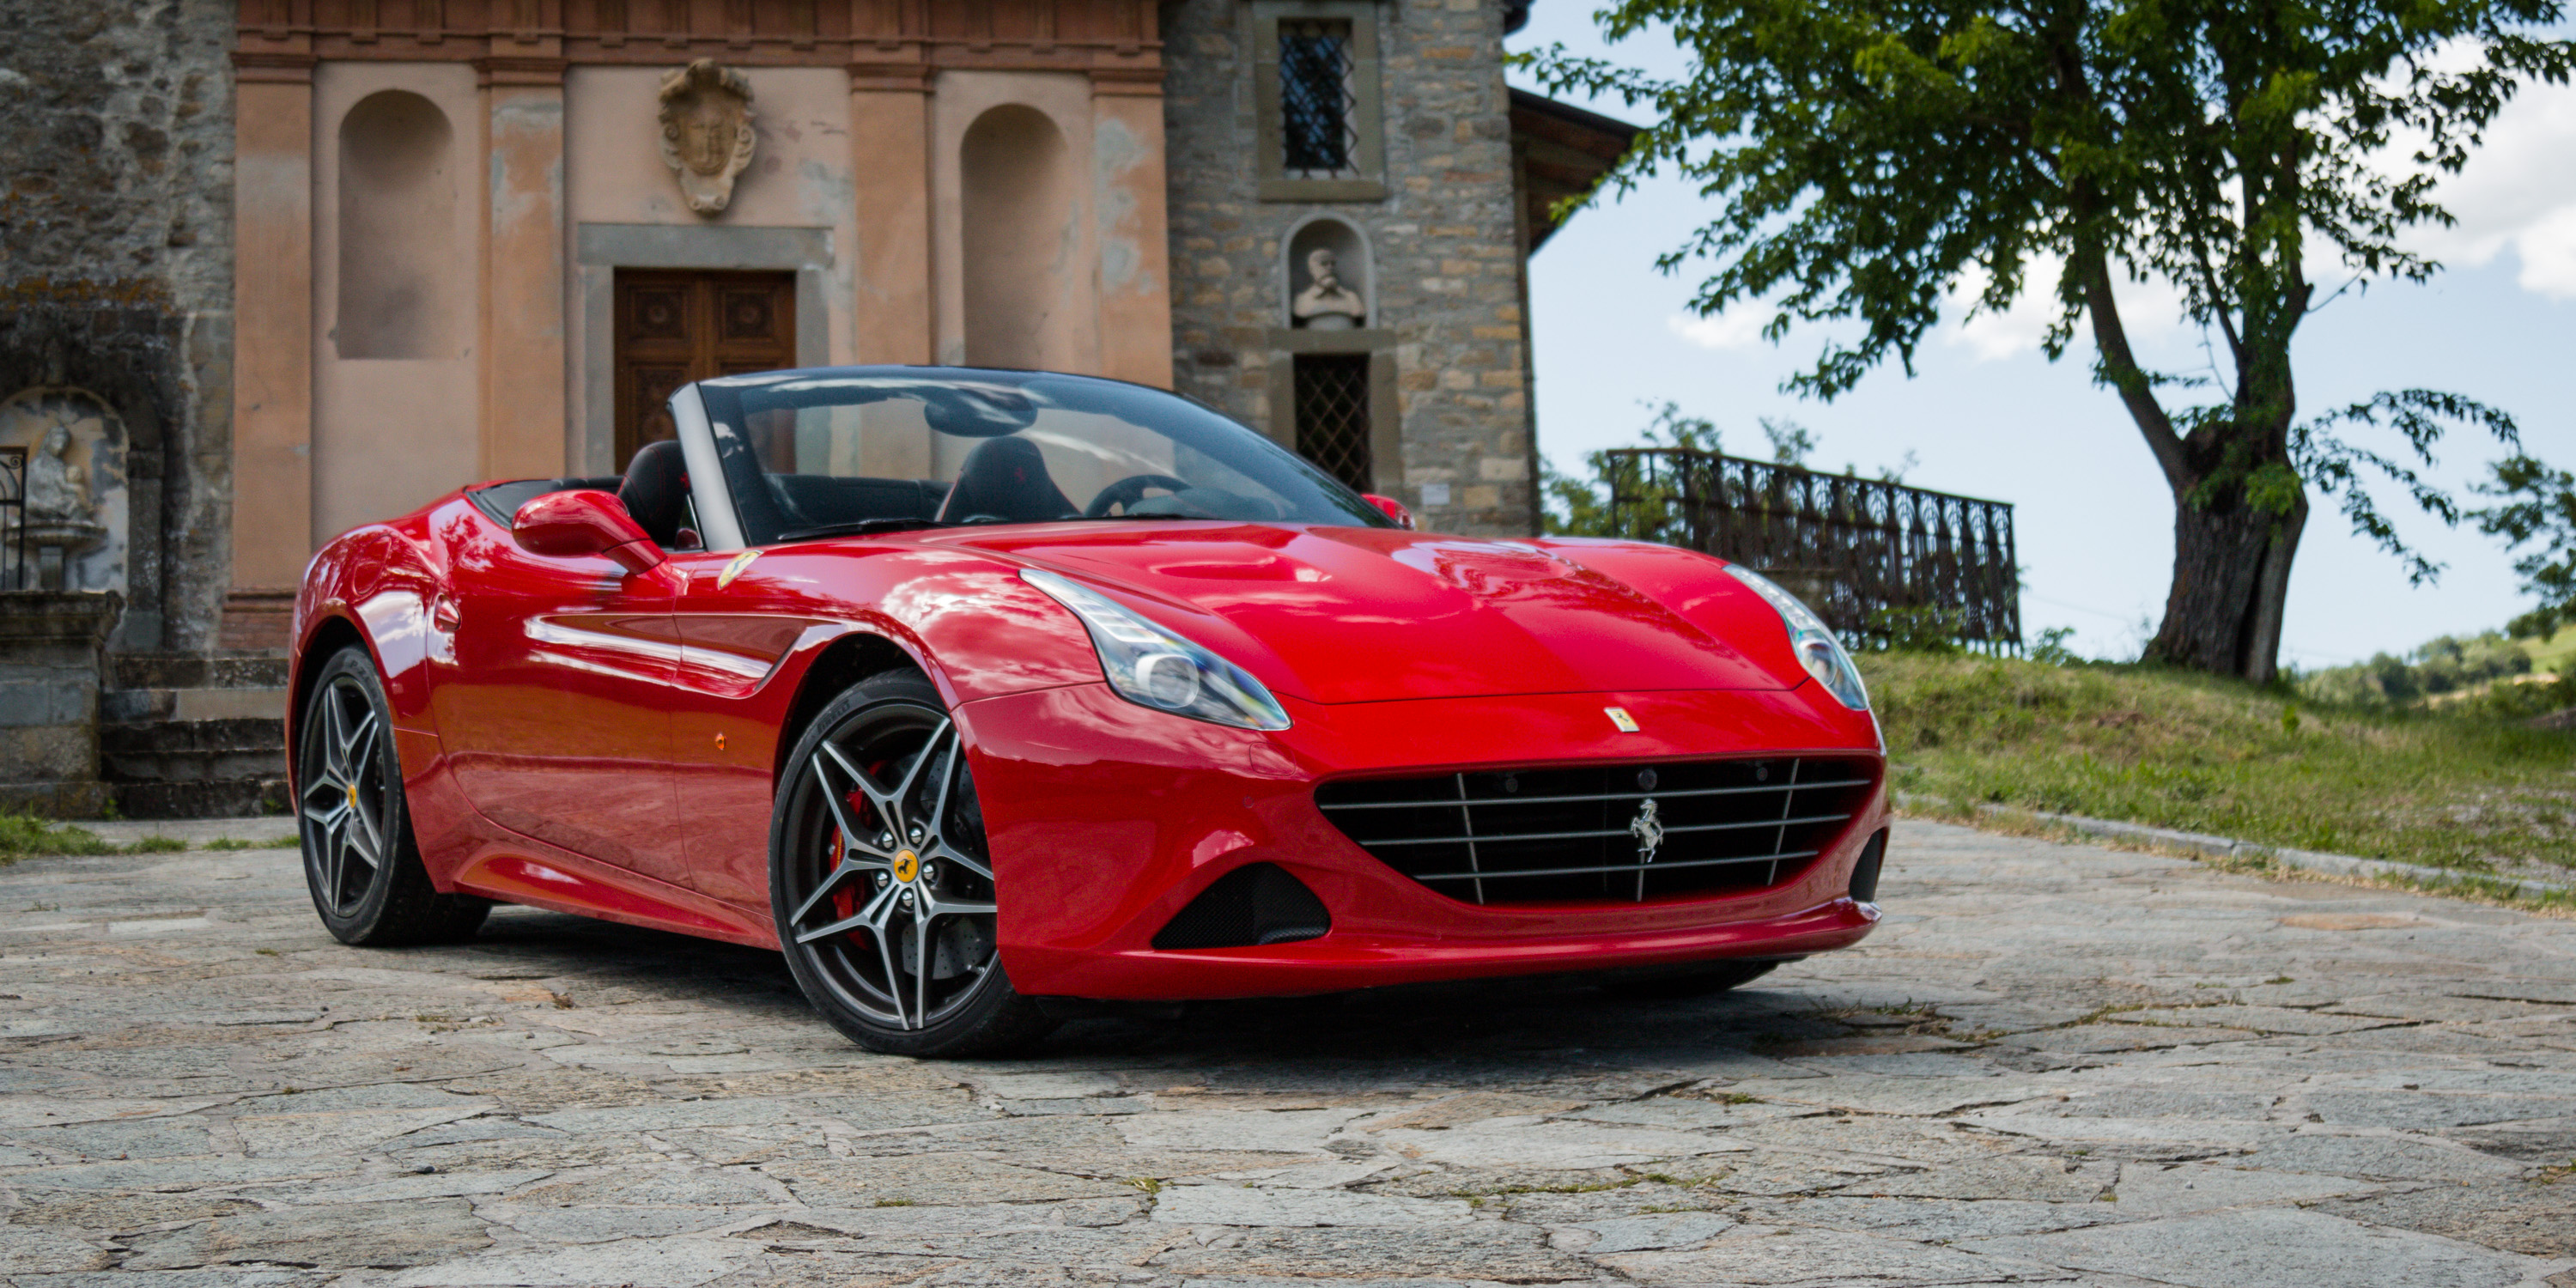 2016 ferrari california t handling speciale review photos caradvice. Black Bedroom Furniture Sets. Home Design Ideas